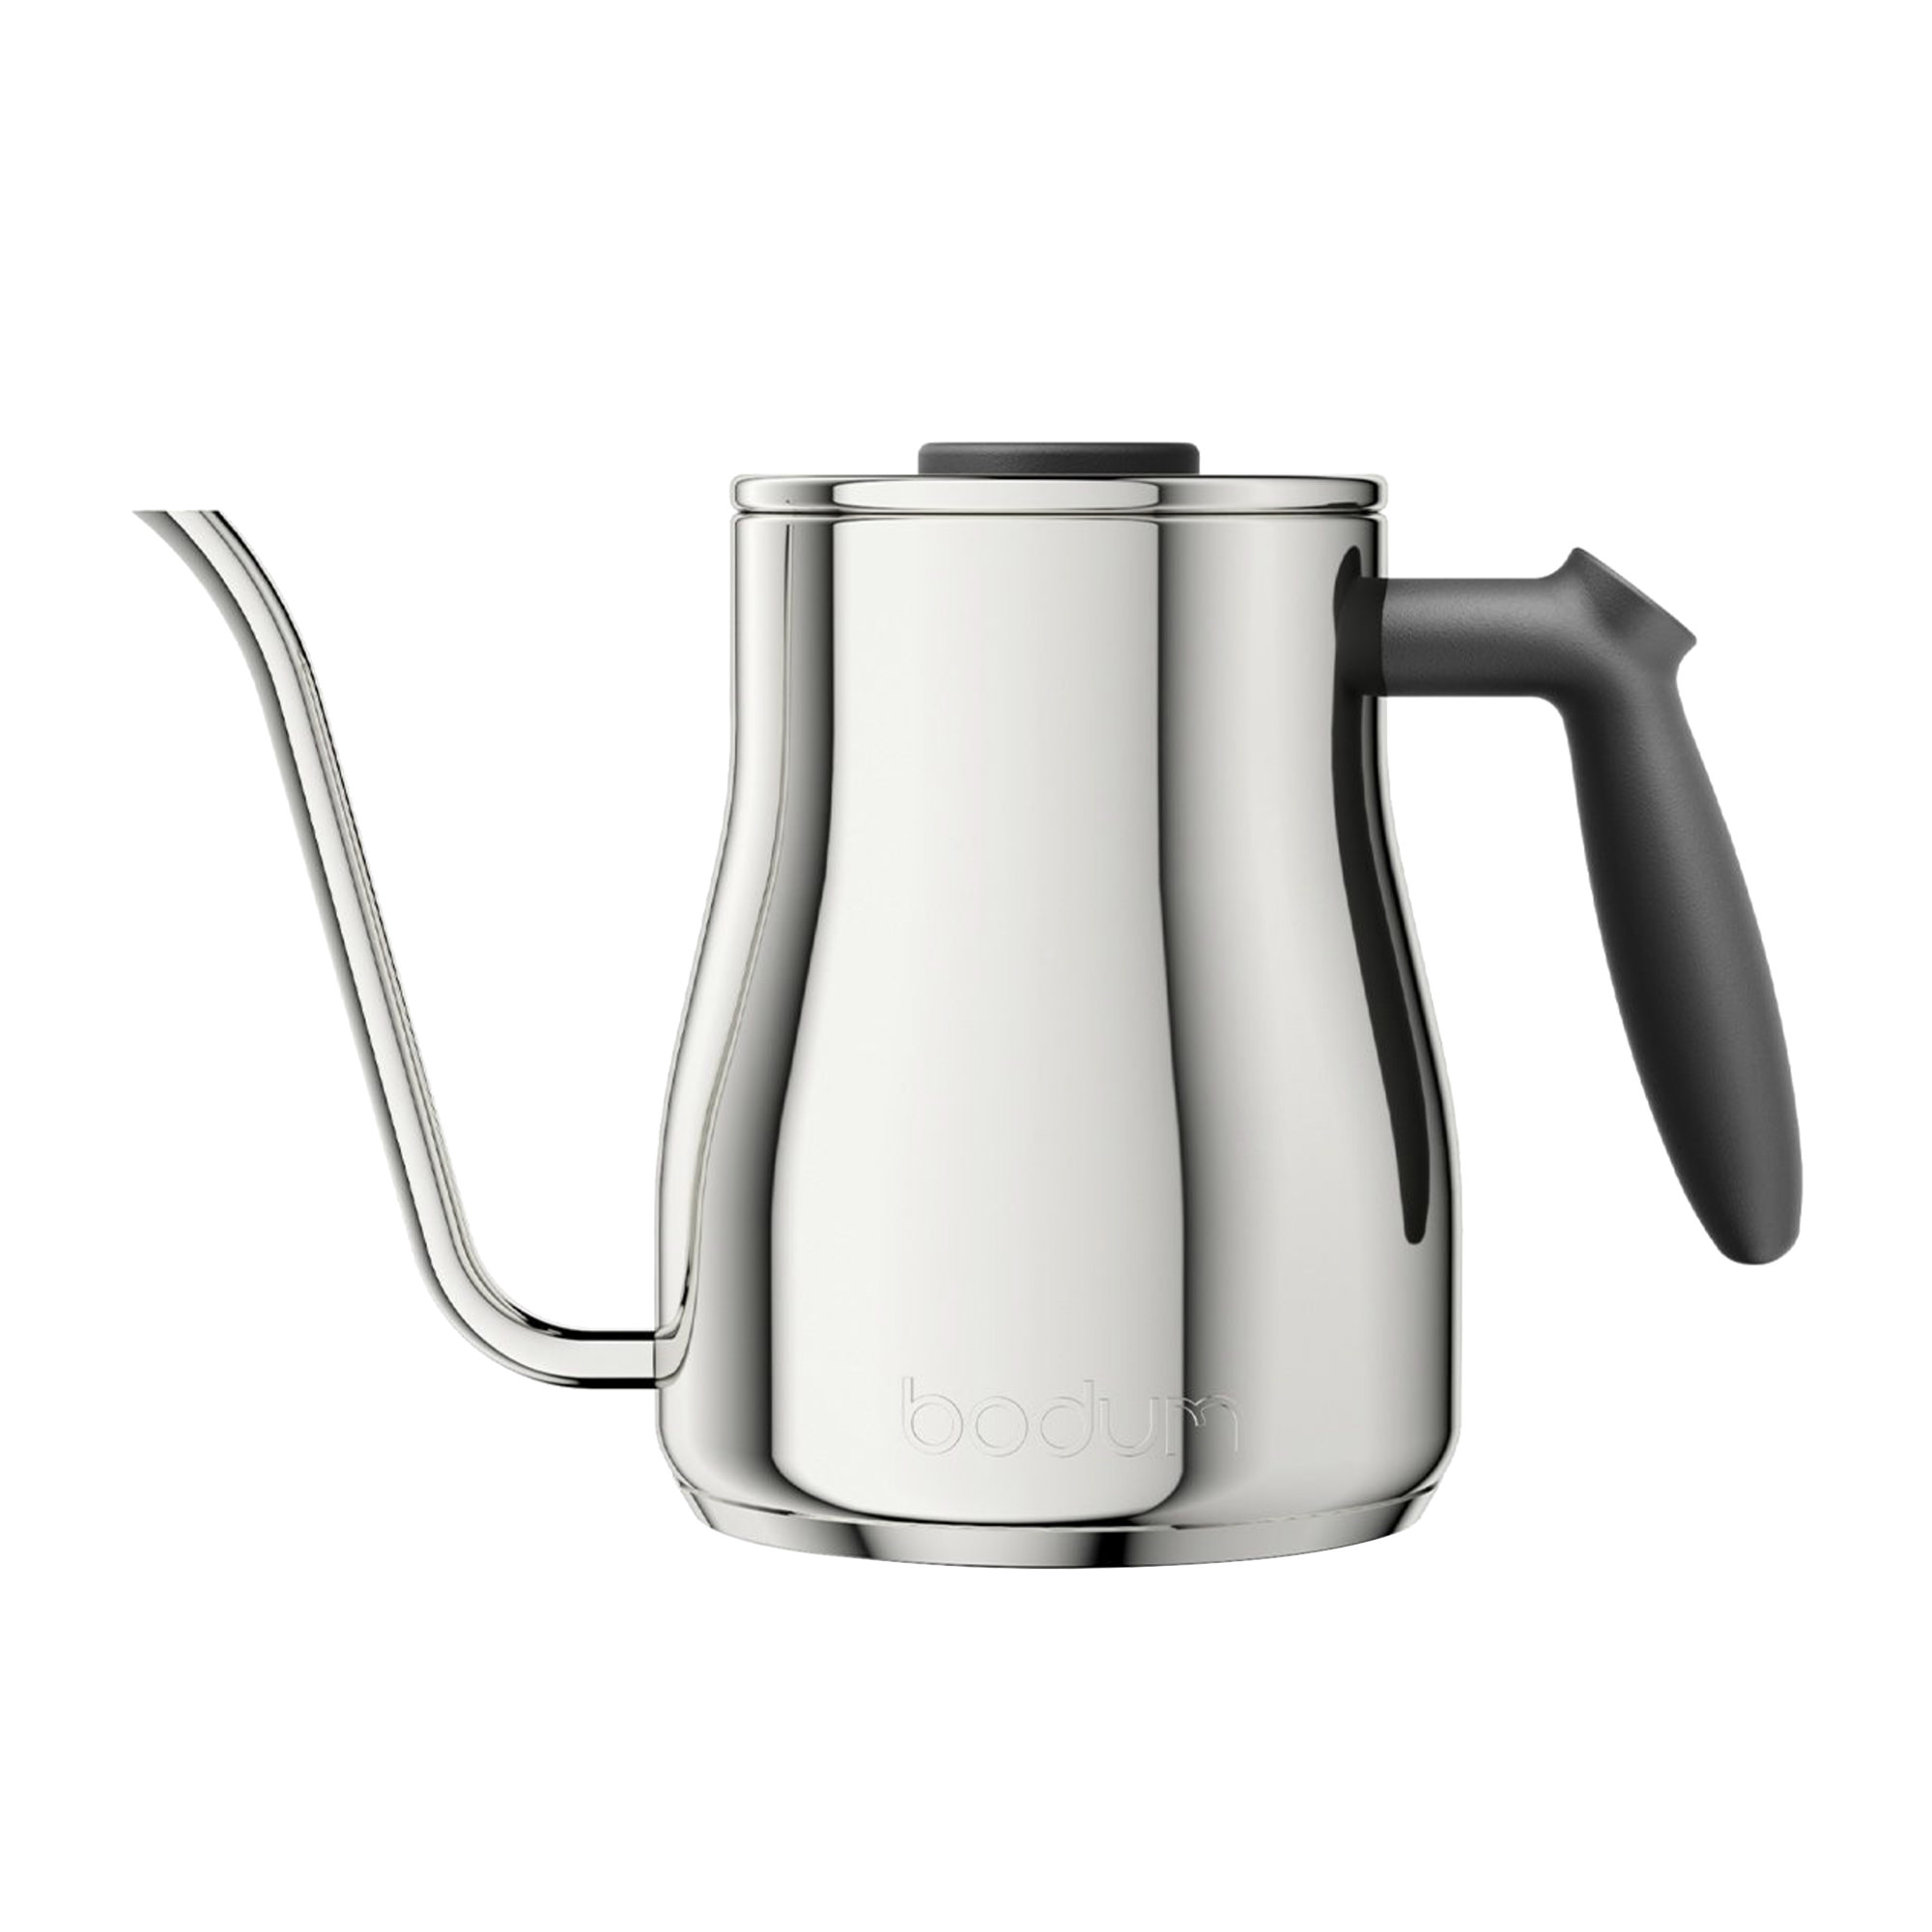 Bodum Bistro Gooseneck Pour Over Kettle 1L Stainless Steel